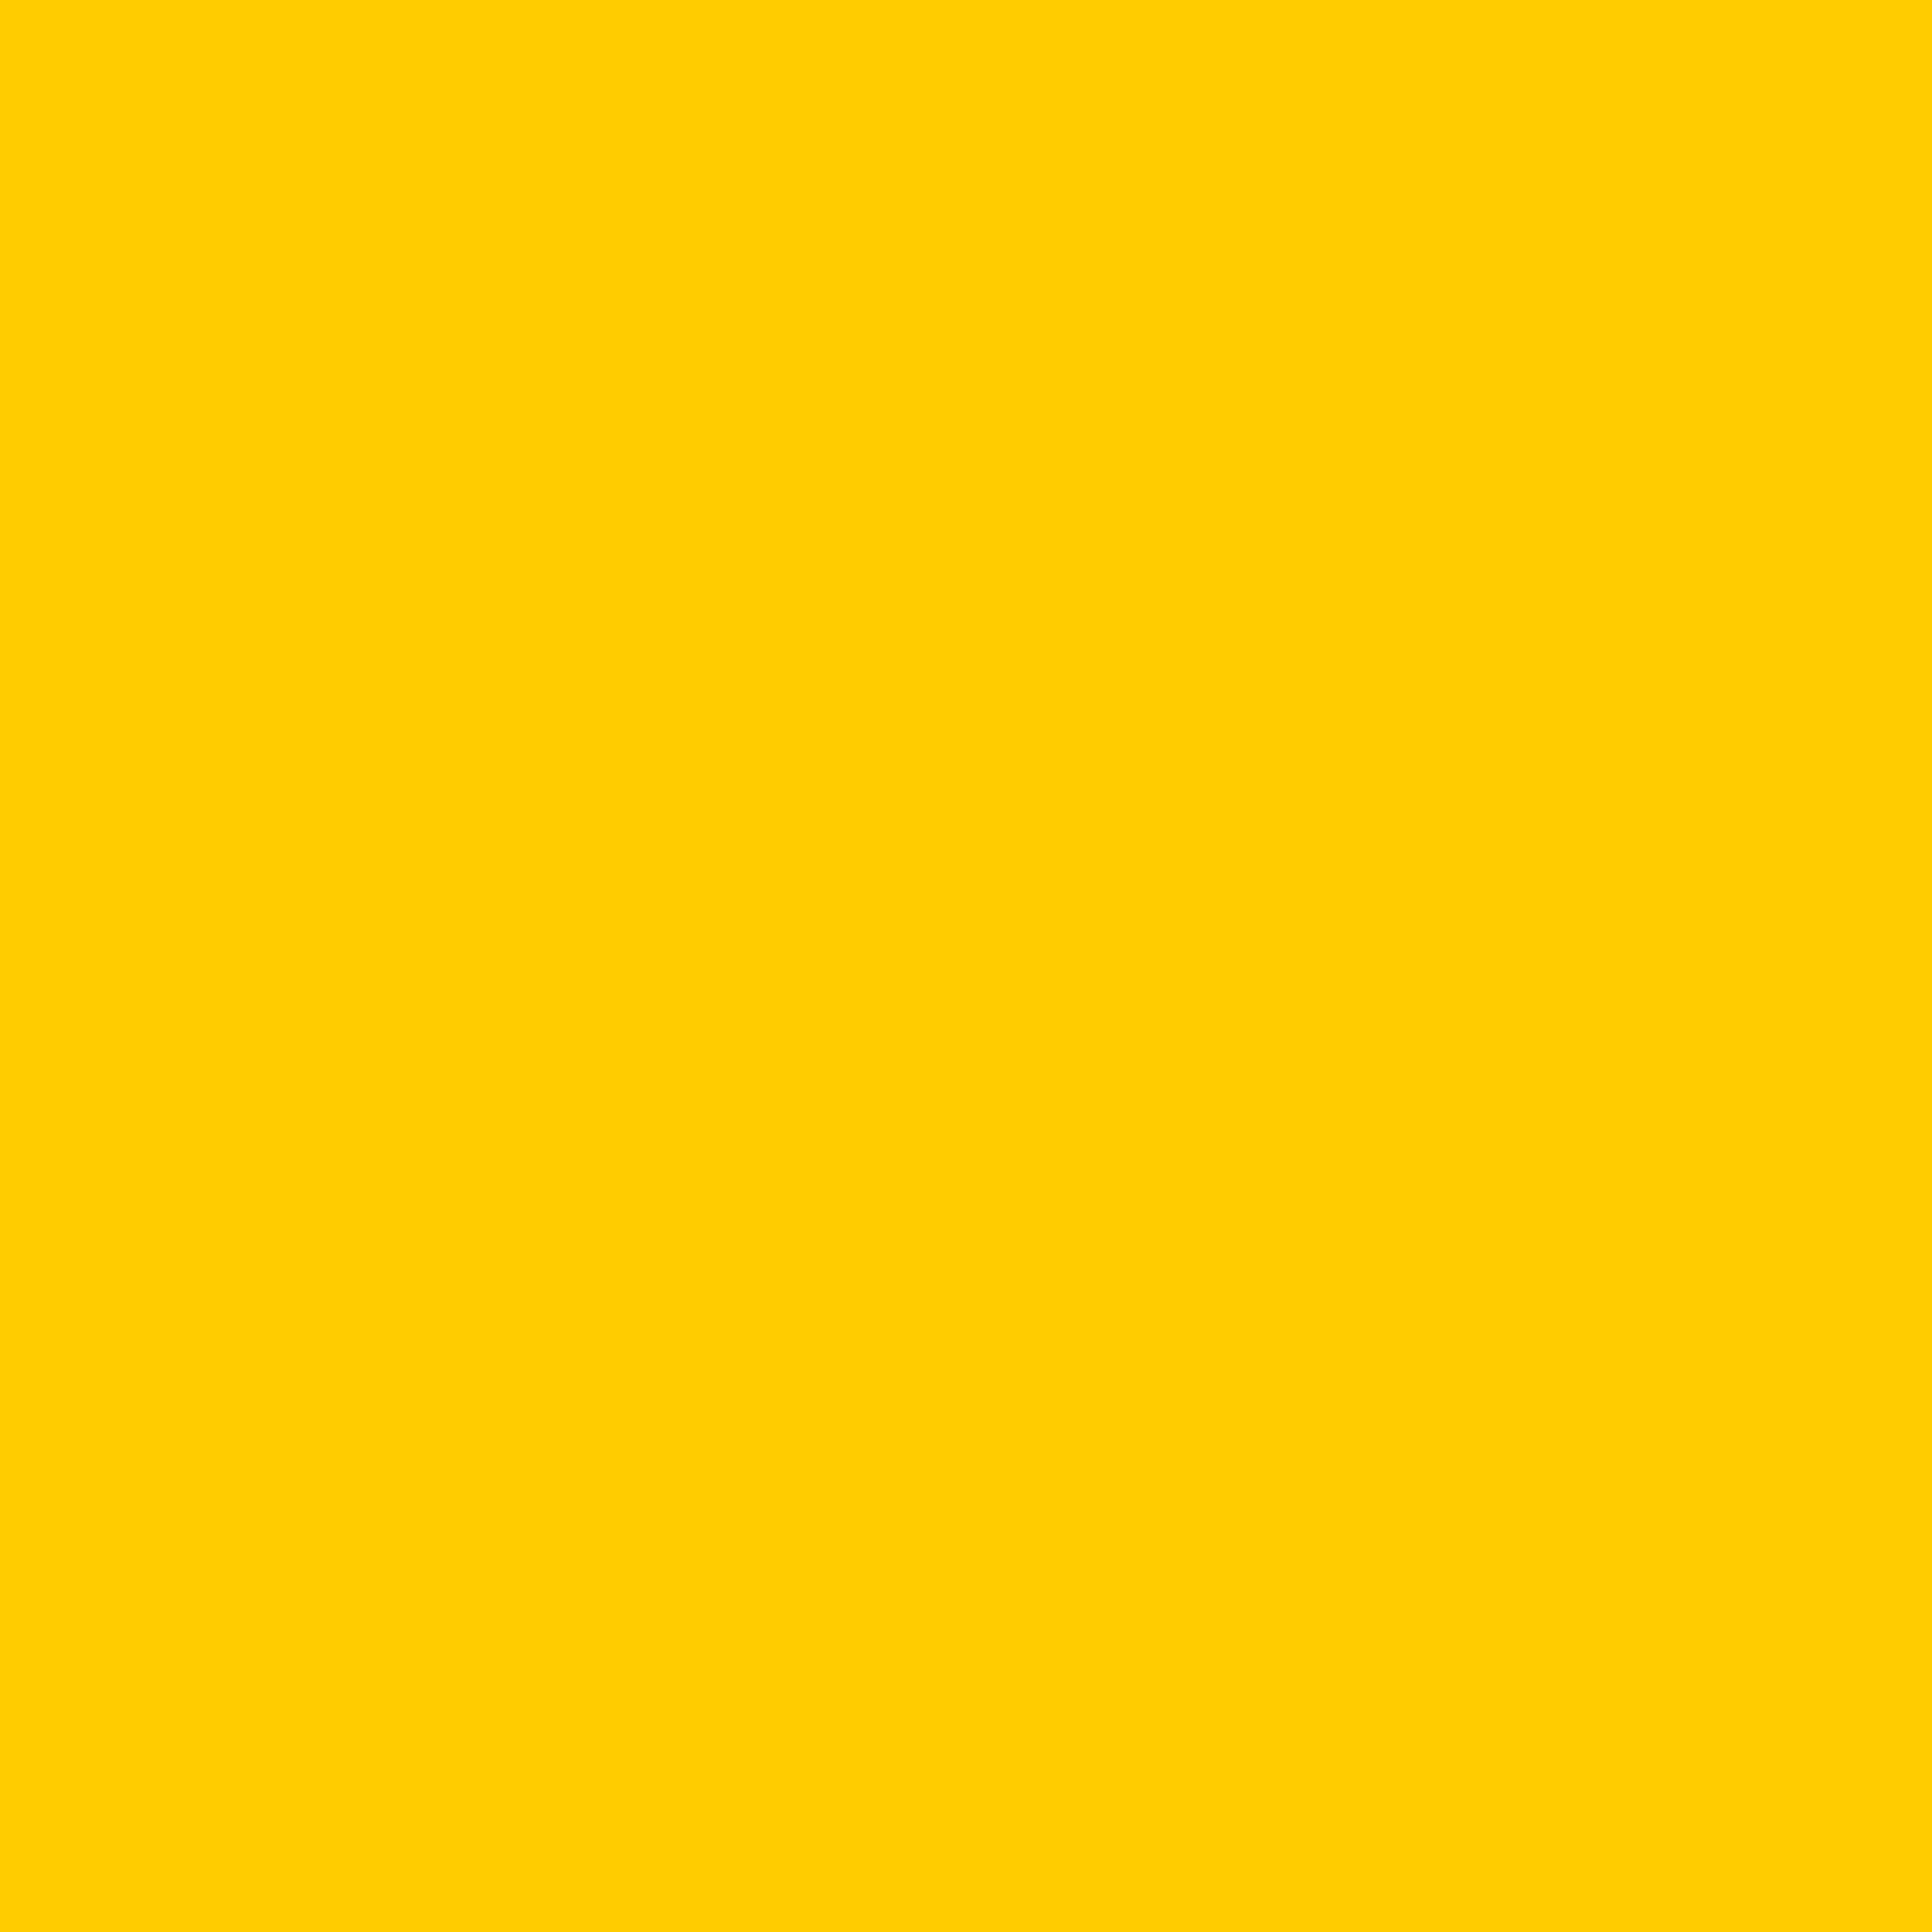 2732x2732 Tangerine Yellow Solid Color Background